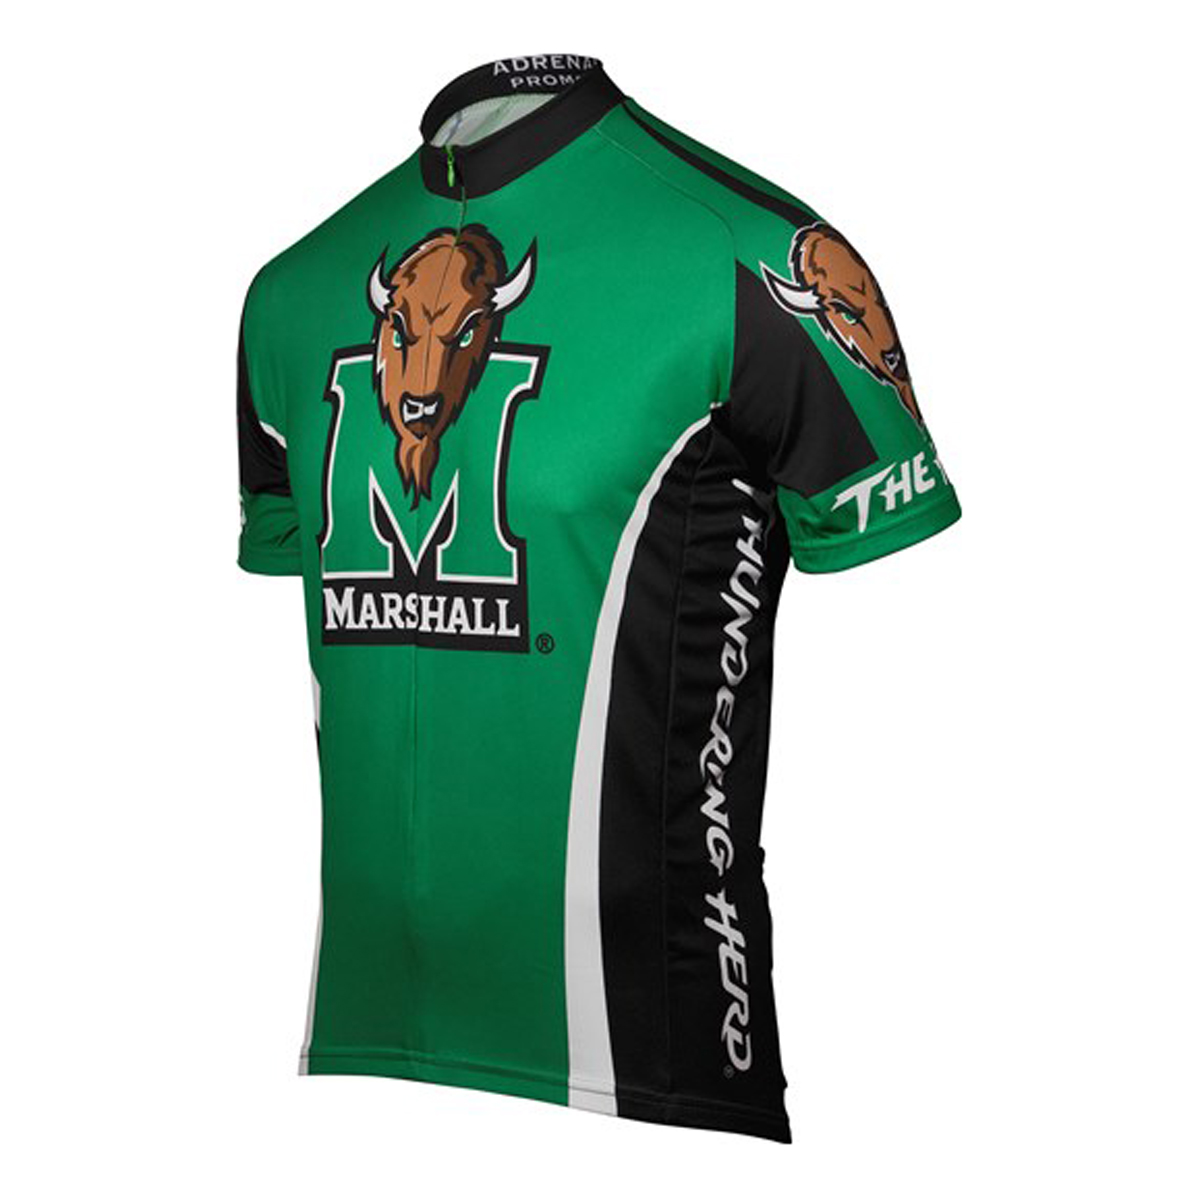 Adrenaline Promotions Men's Marshall Cycling Jersey